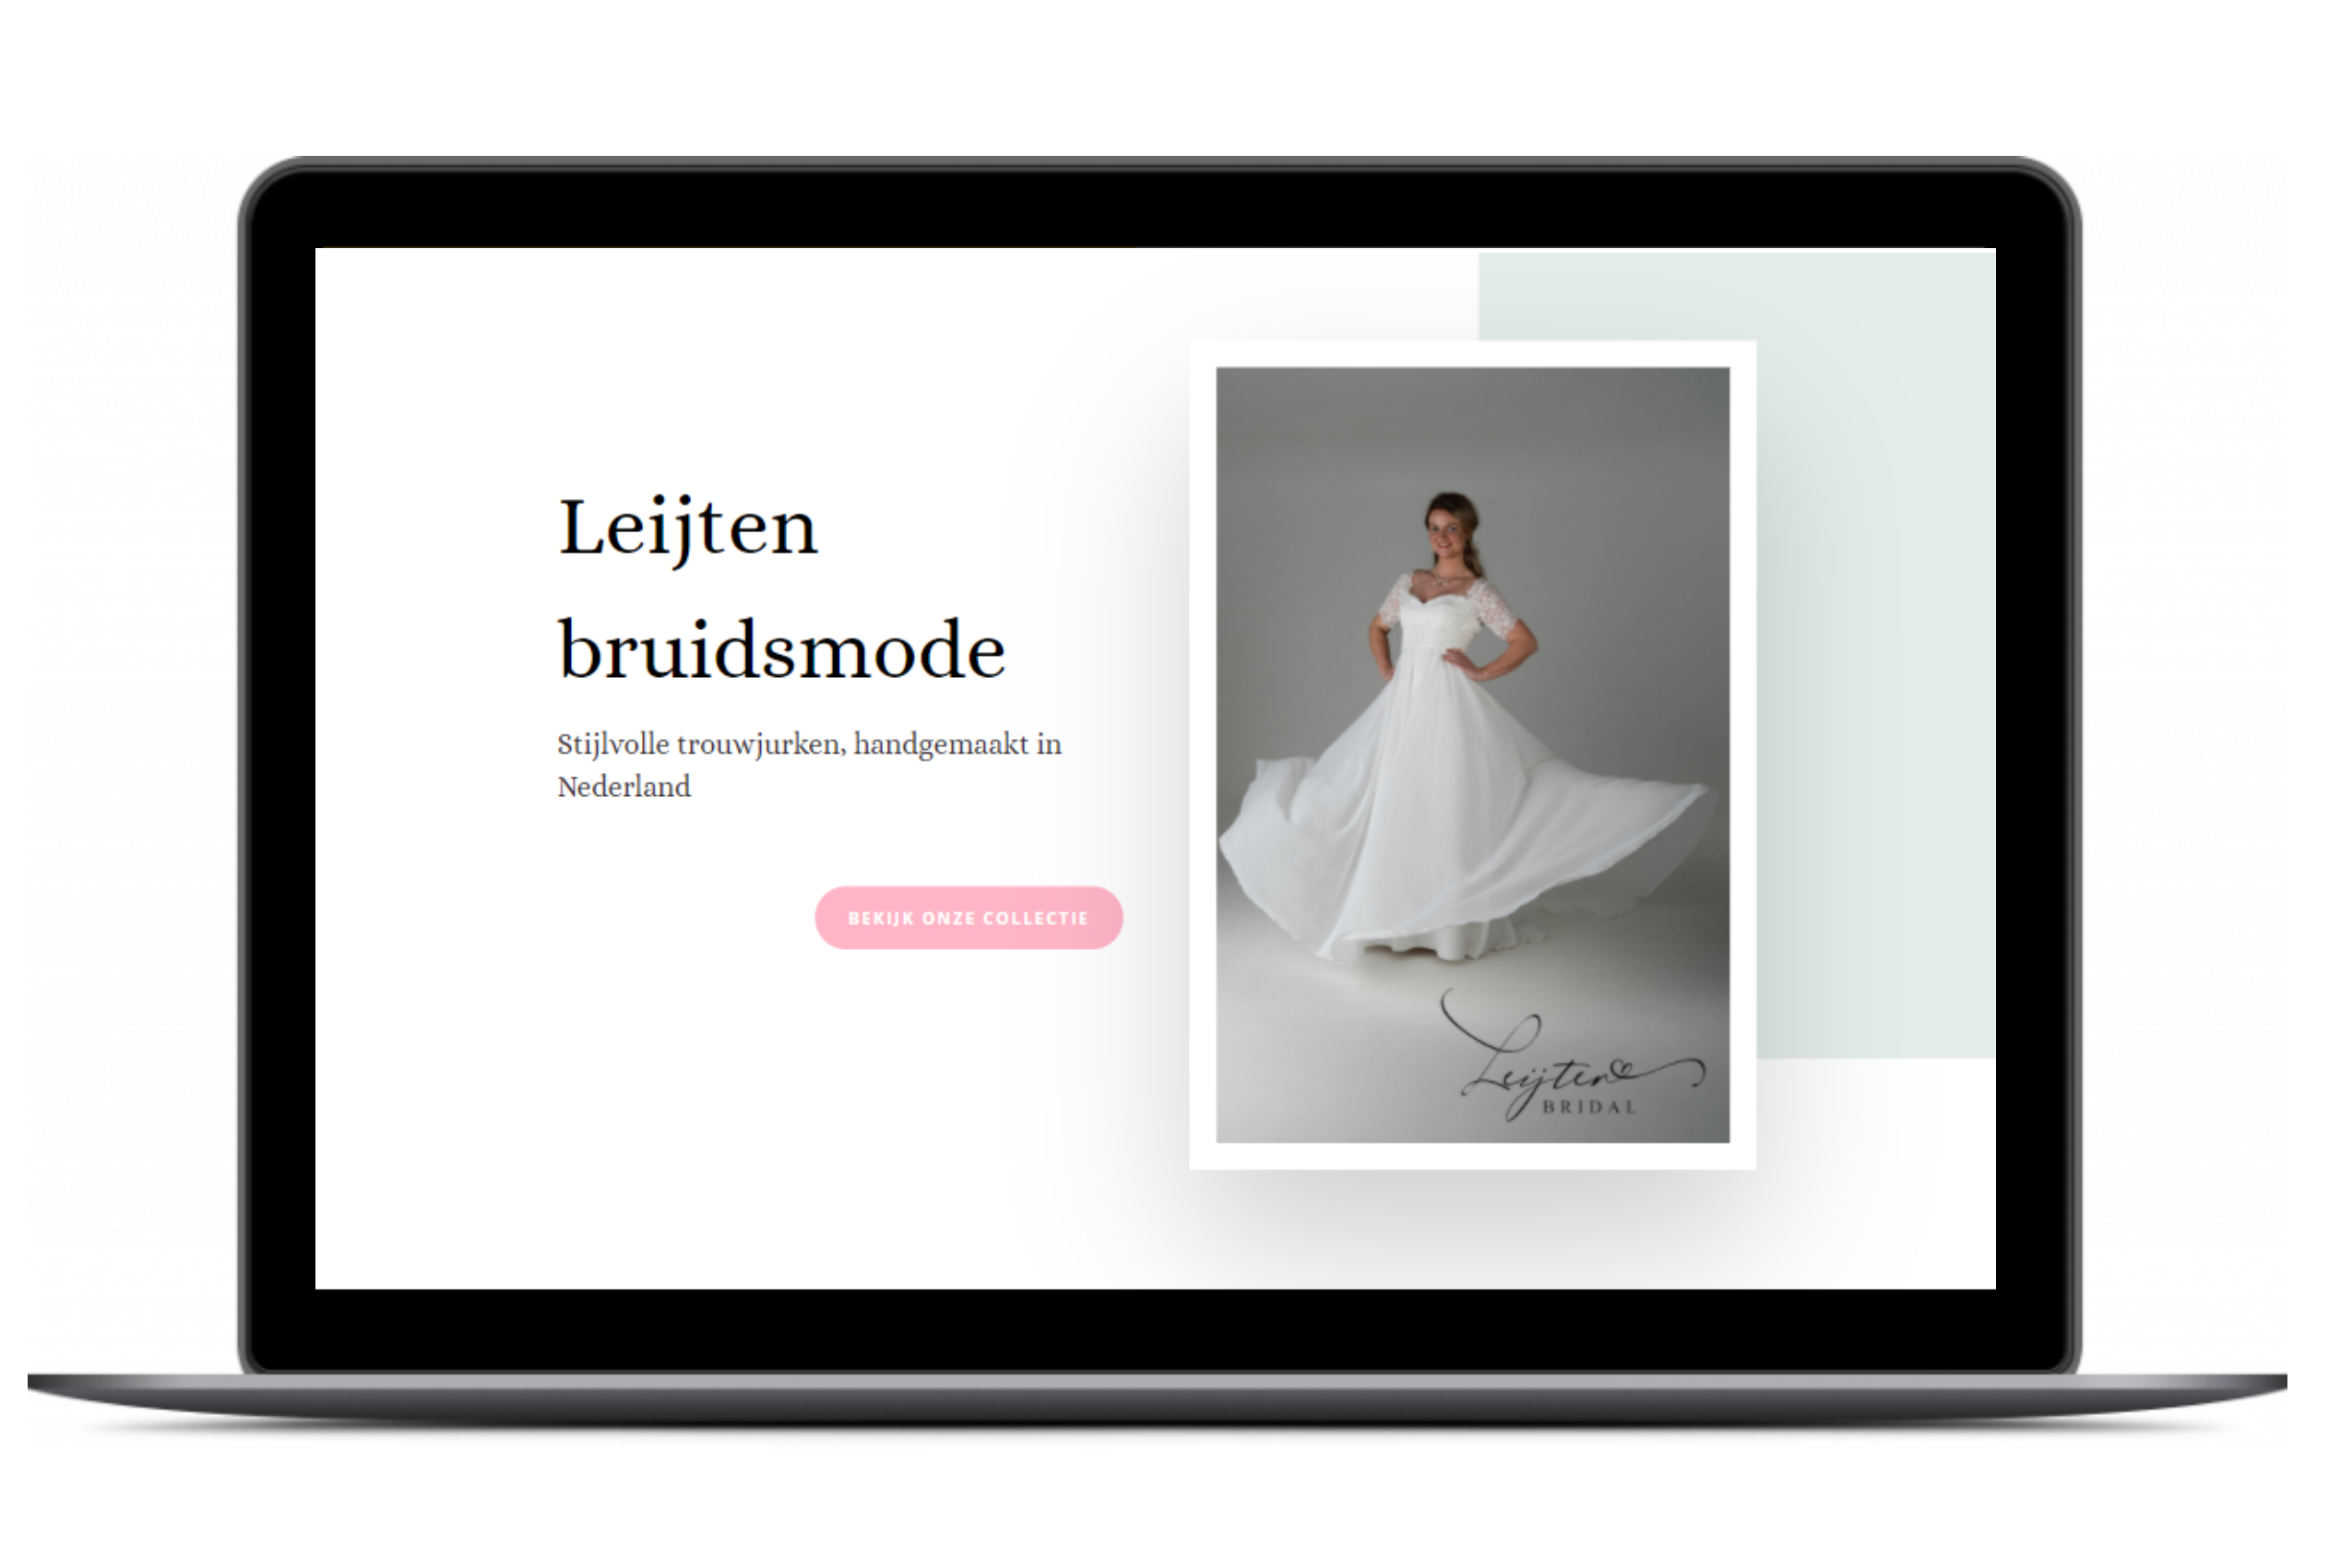 wordpress website desktop leijten bruidsmode